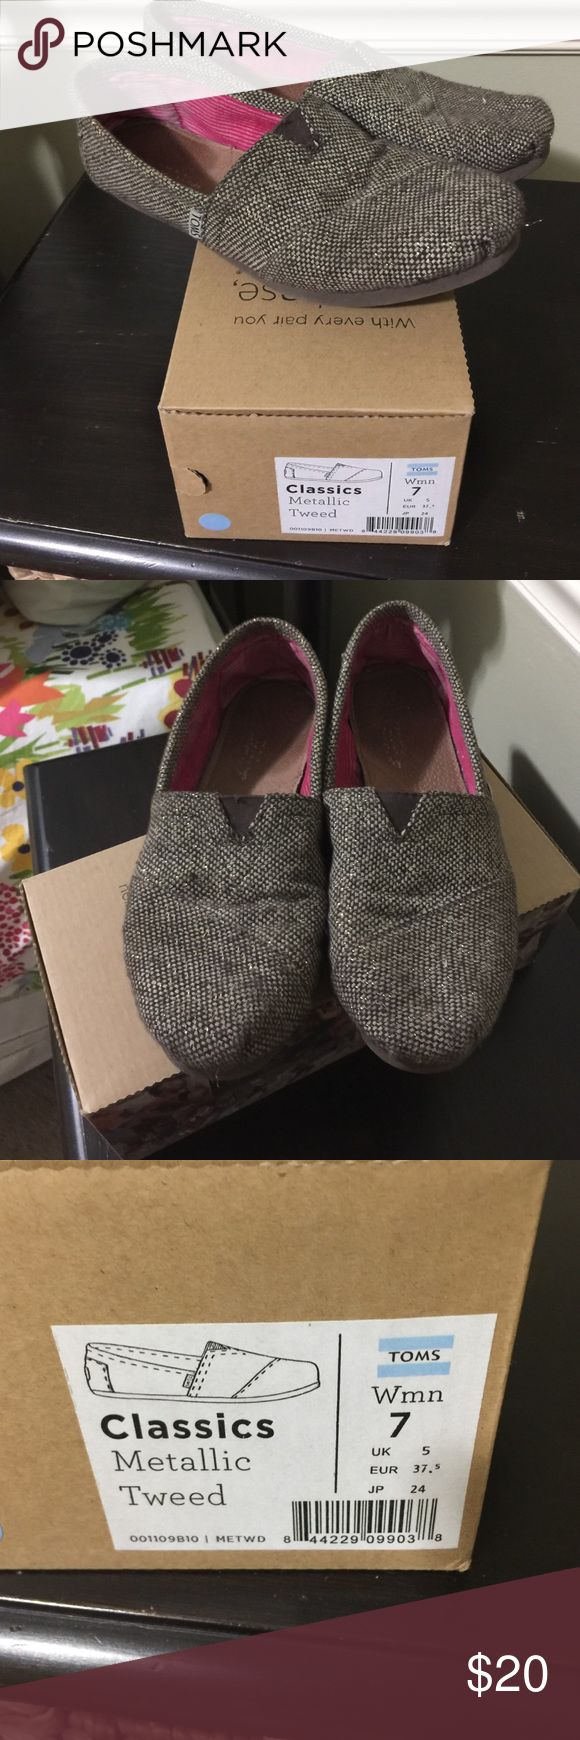 Toms for women Gently worn Toms classic metallic tweed, size 7 TOMS Shoes Flats & Loafers